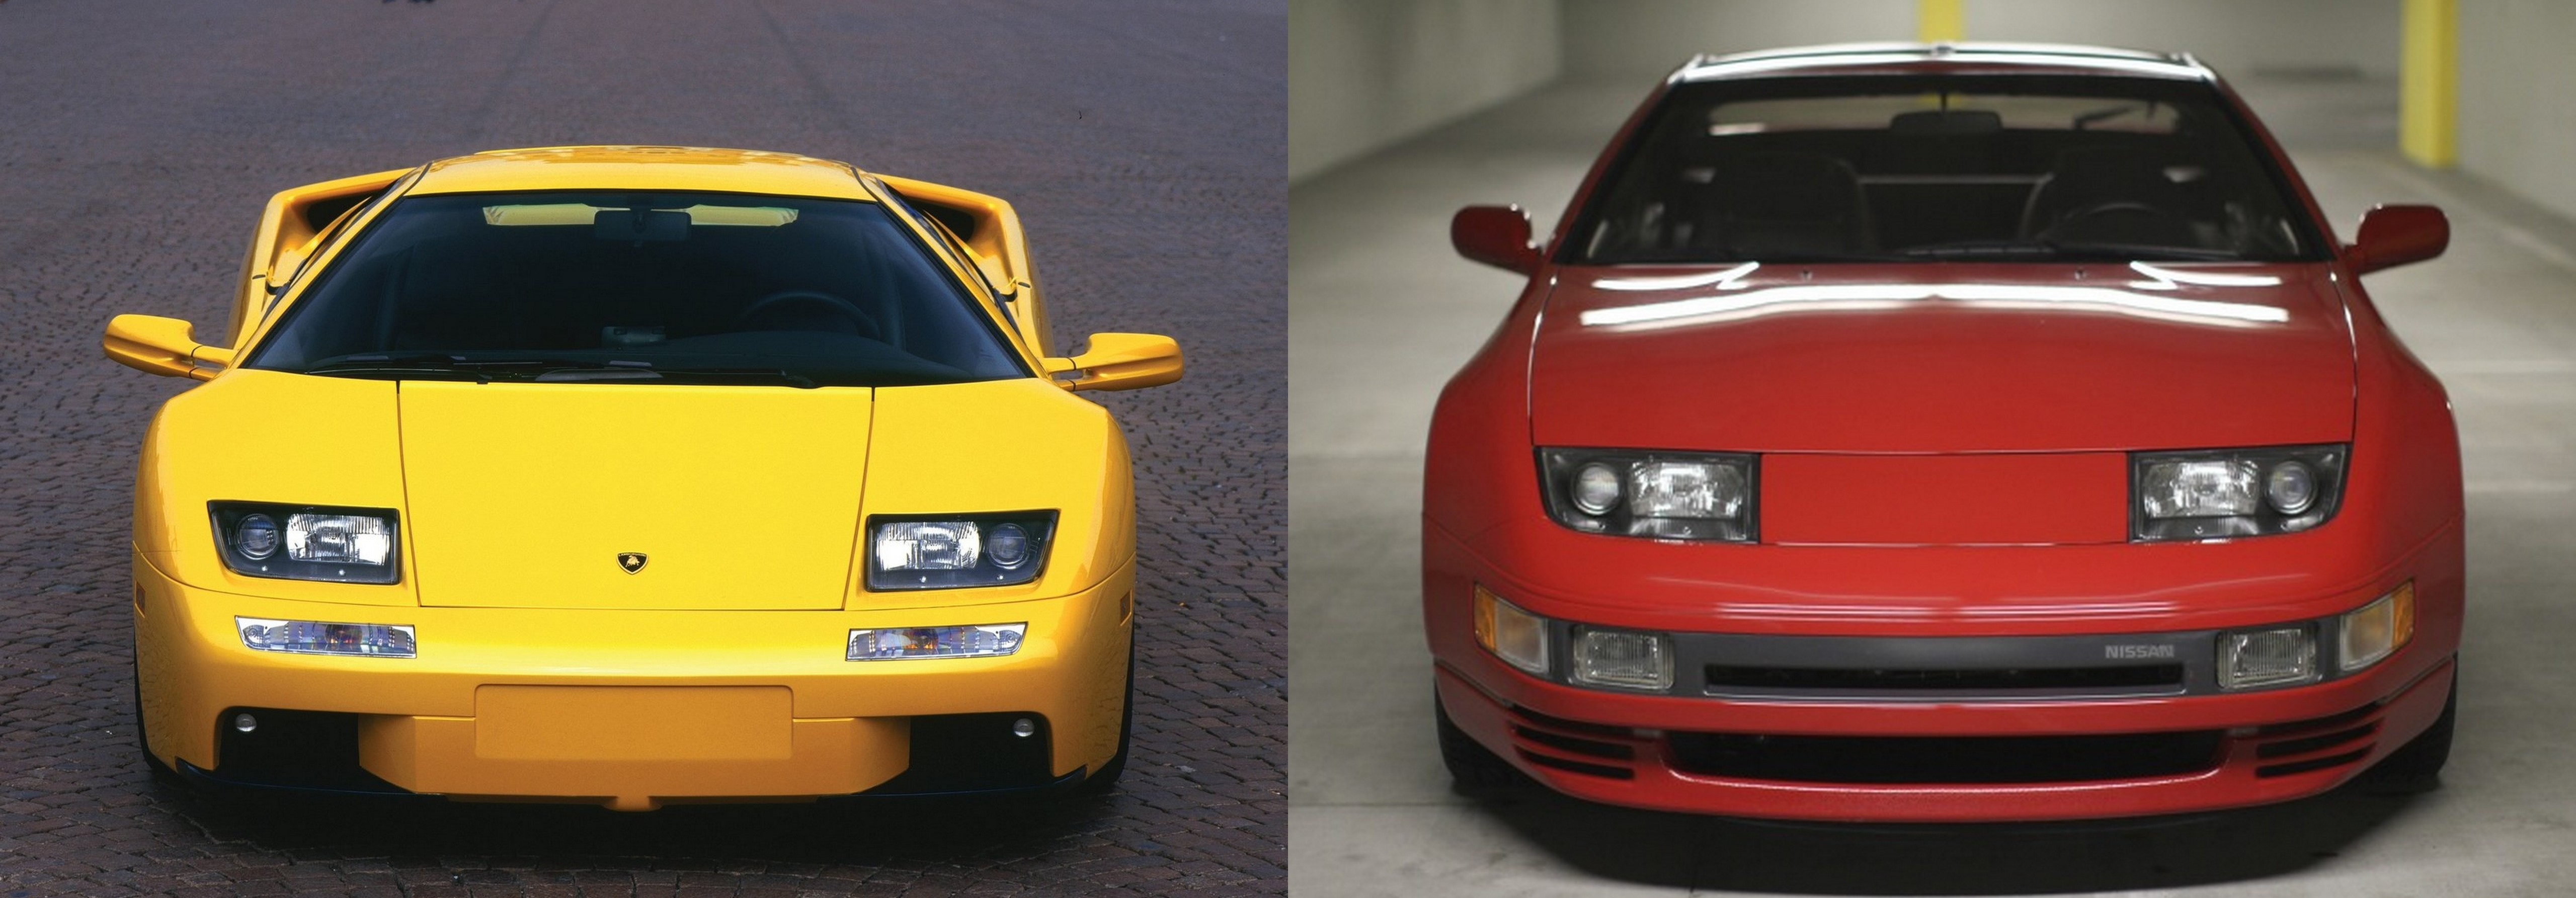 Later Diablos share headlights with the Nissan 300ZX